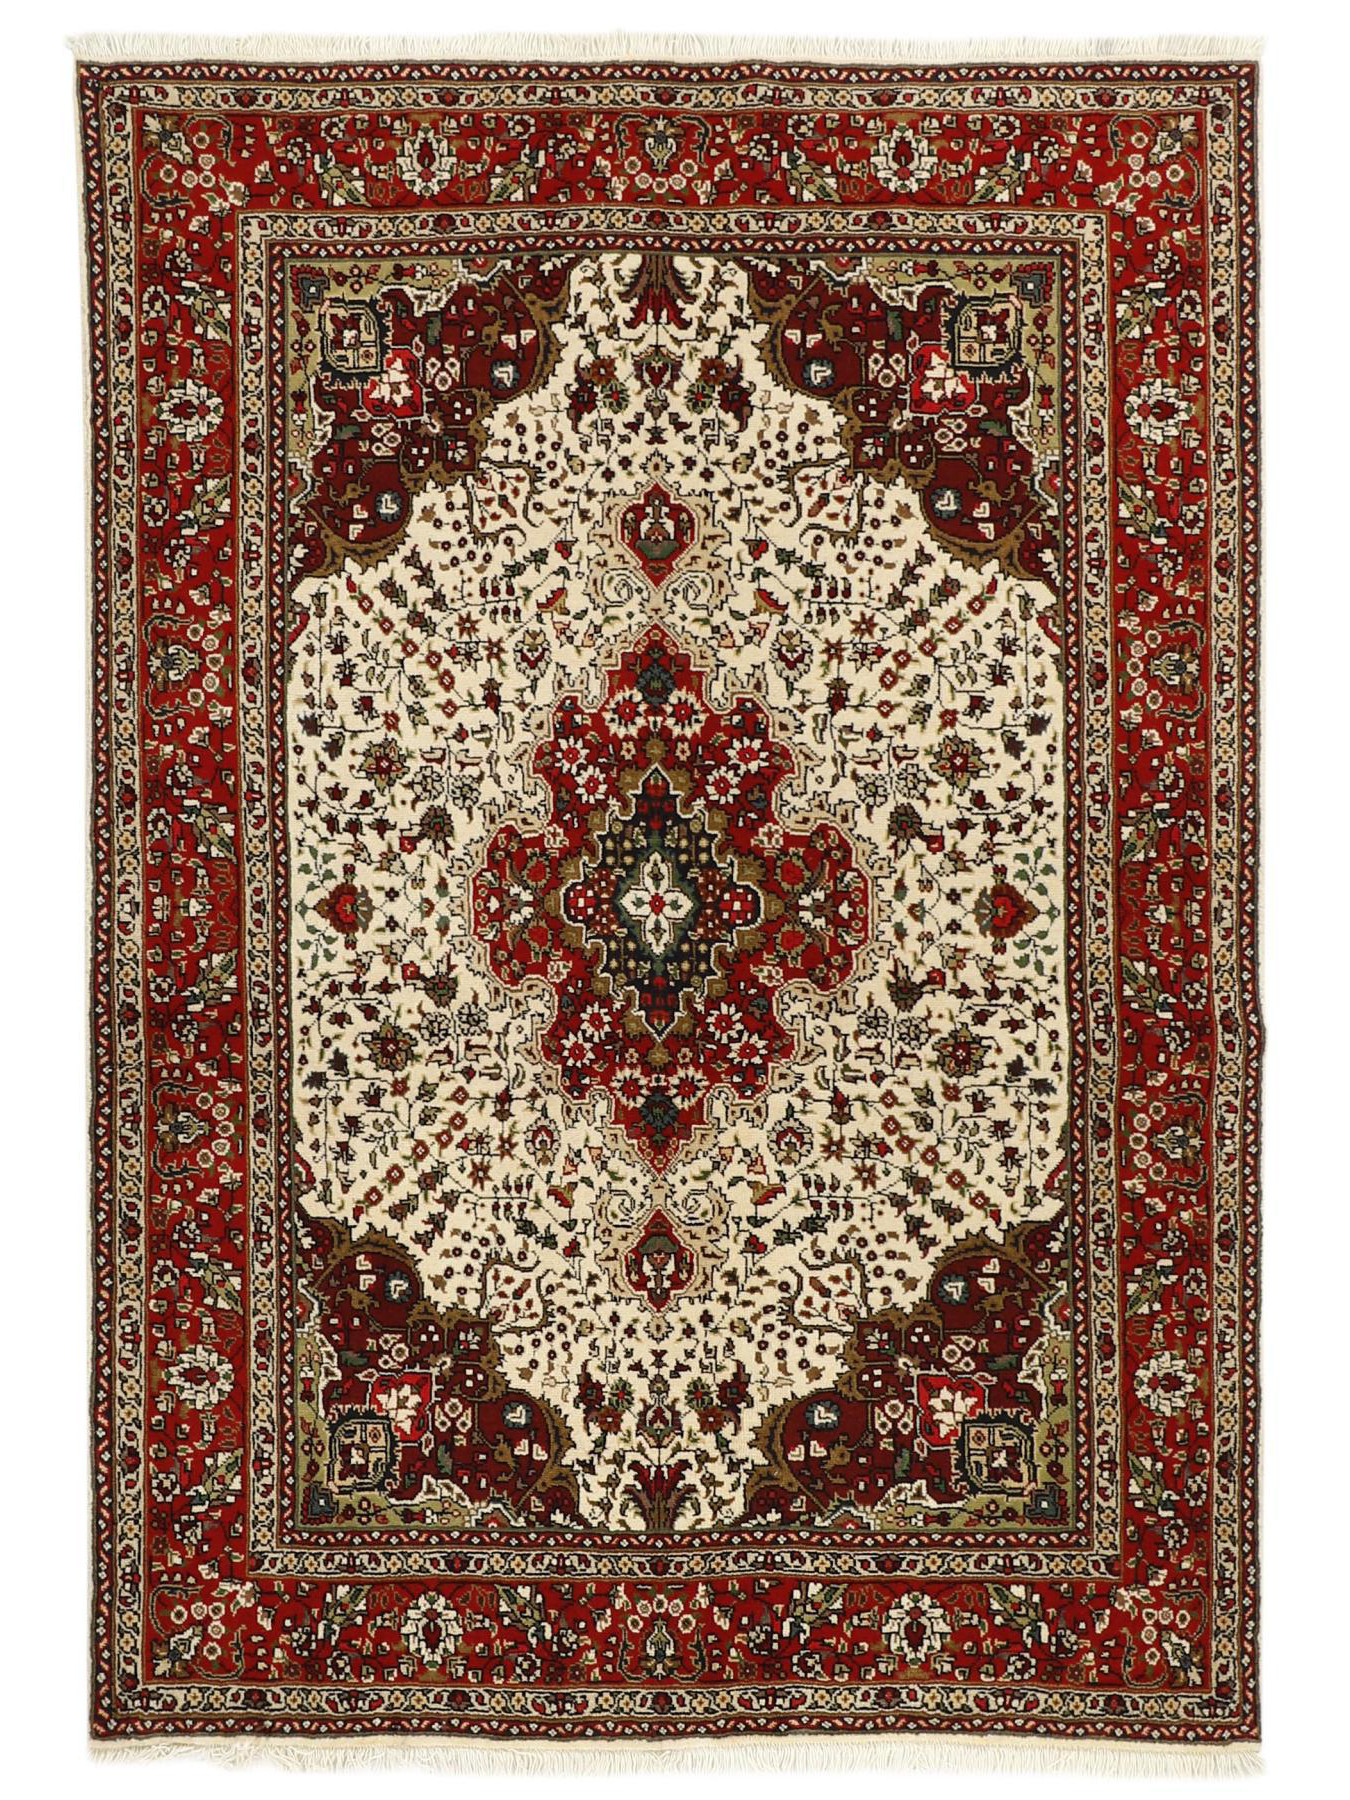 Persian carpets - Tabriz 40